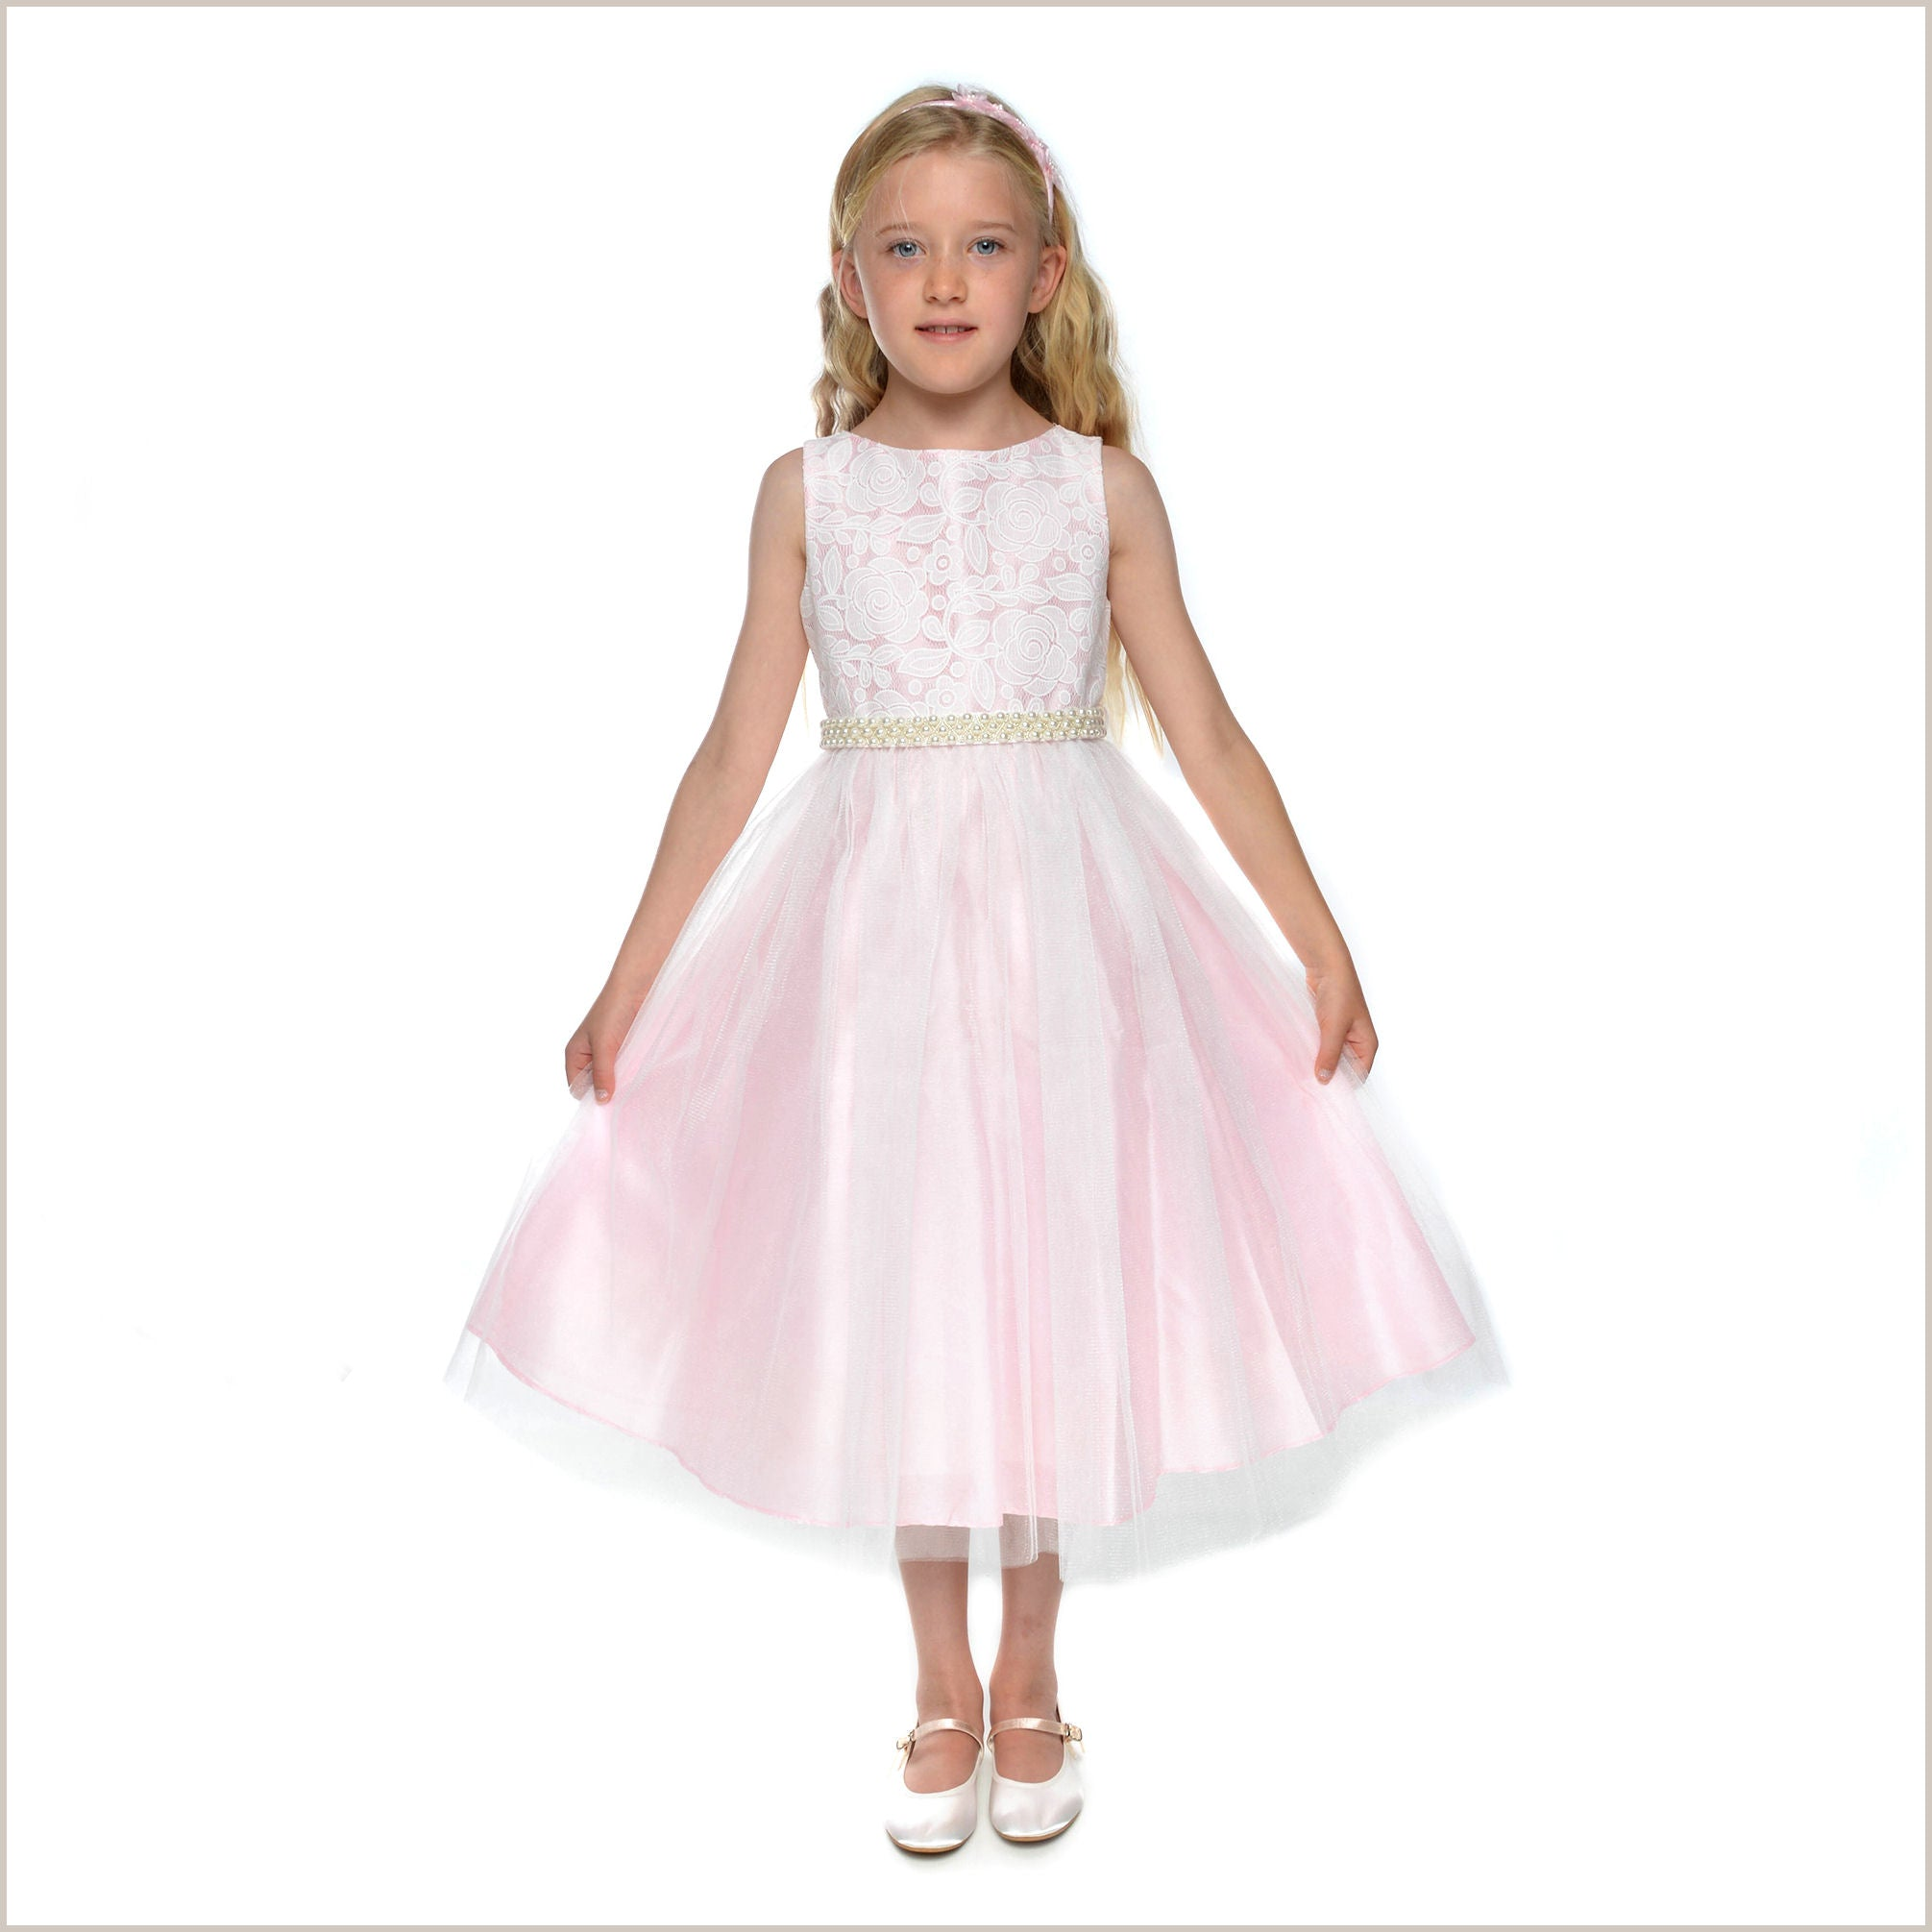 Lily pink lace flower girl dress mightylinksfo